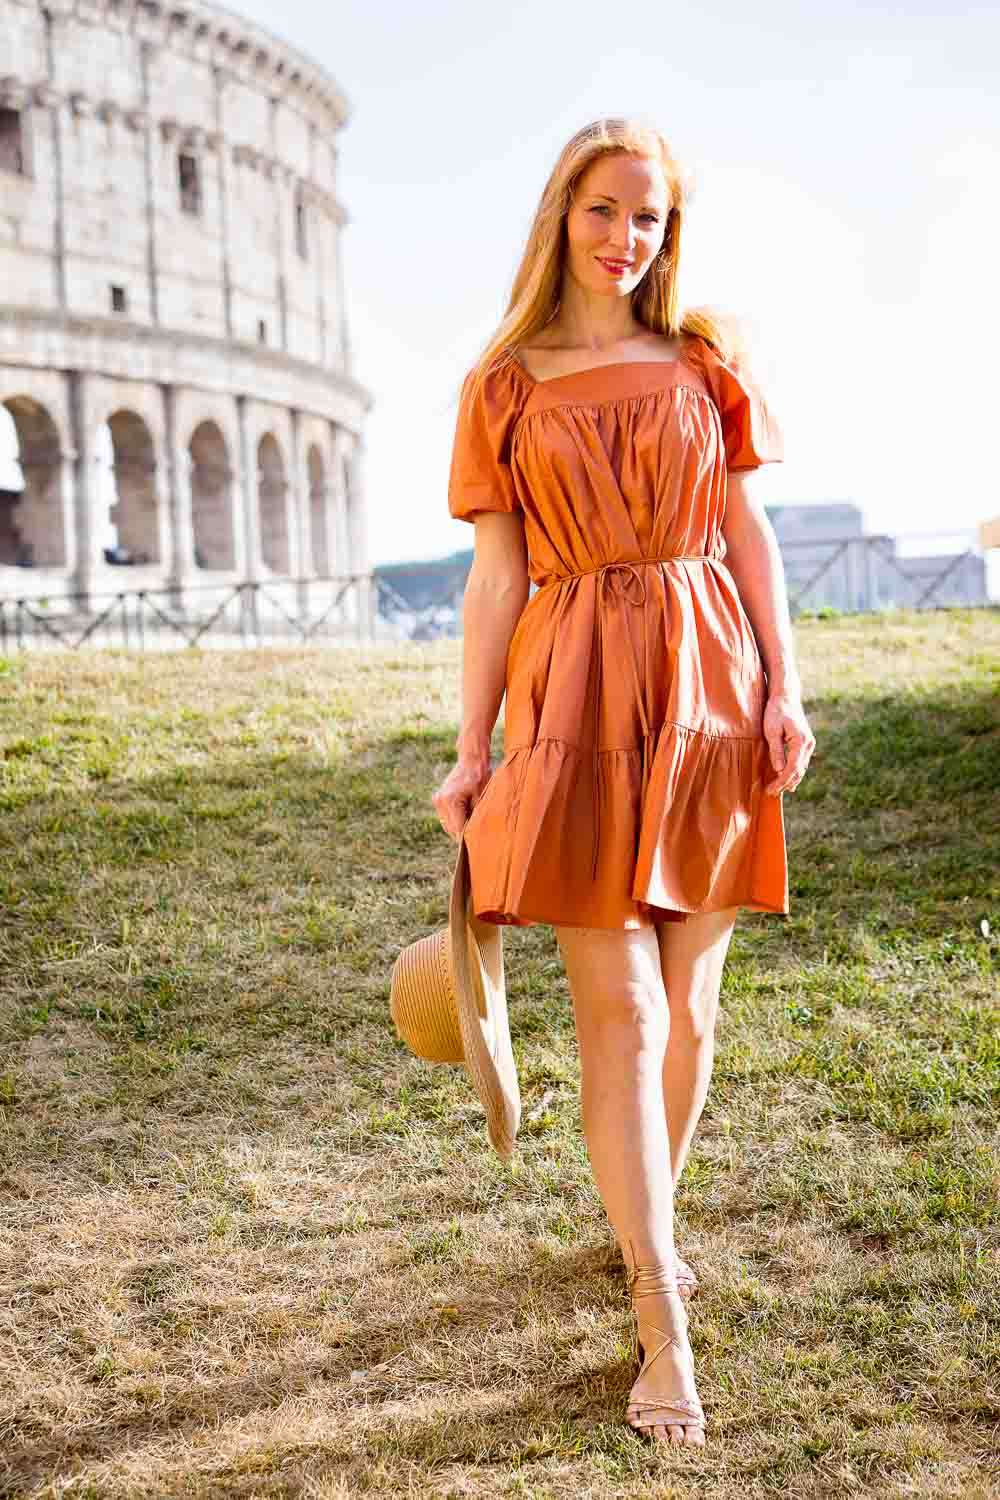 Strolling down in front of the Coliseum in color photography